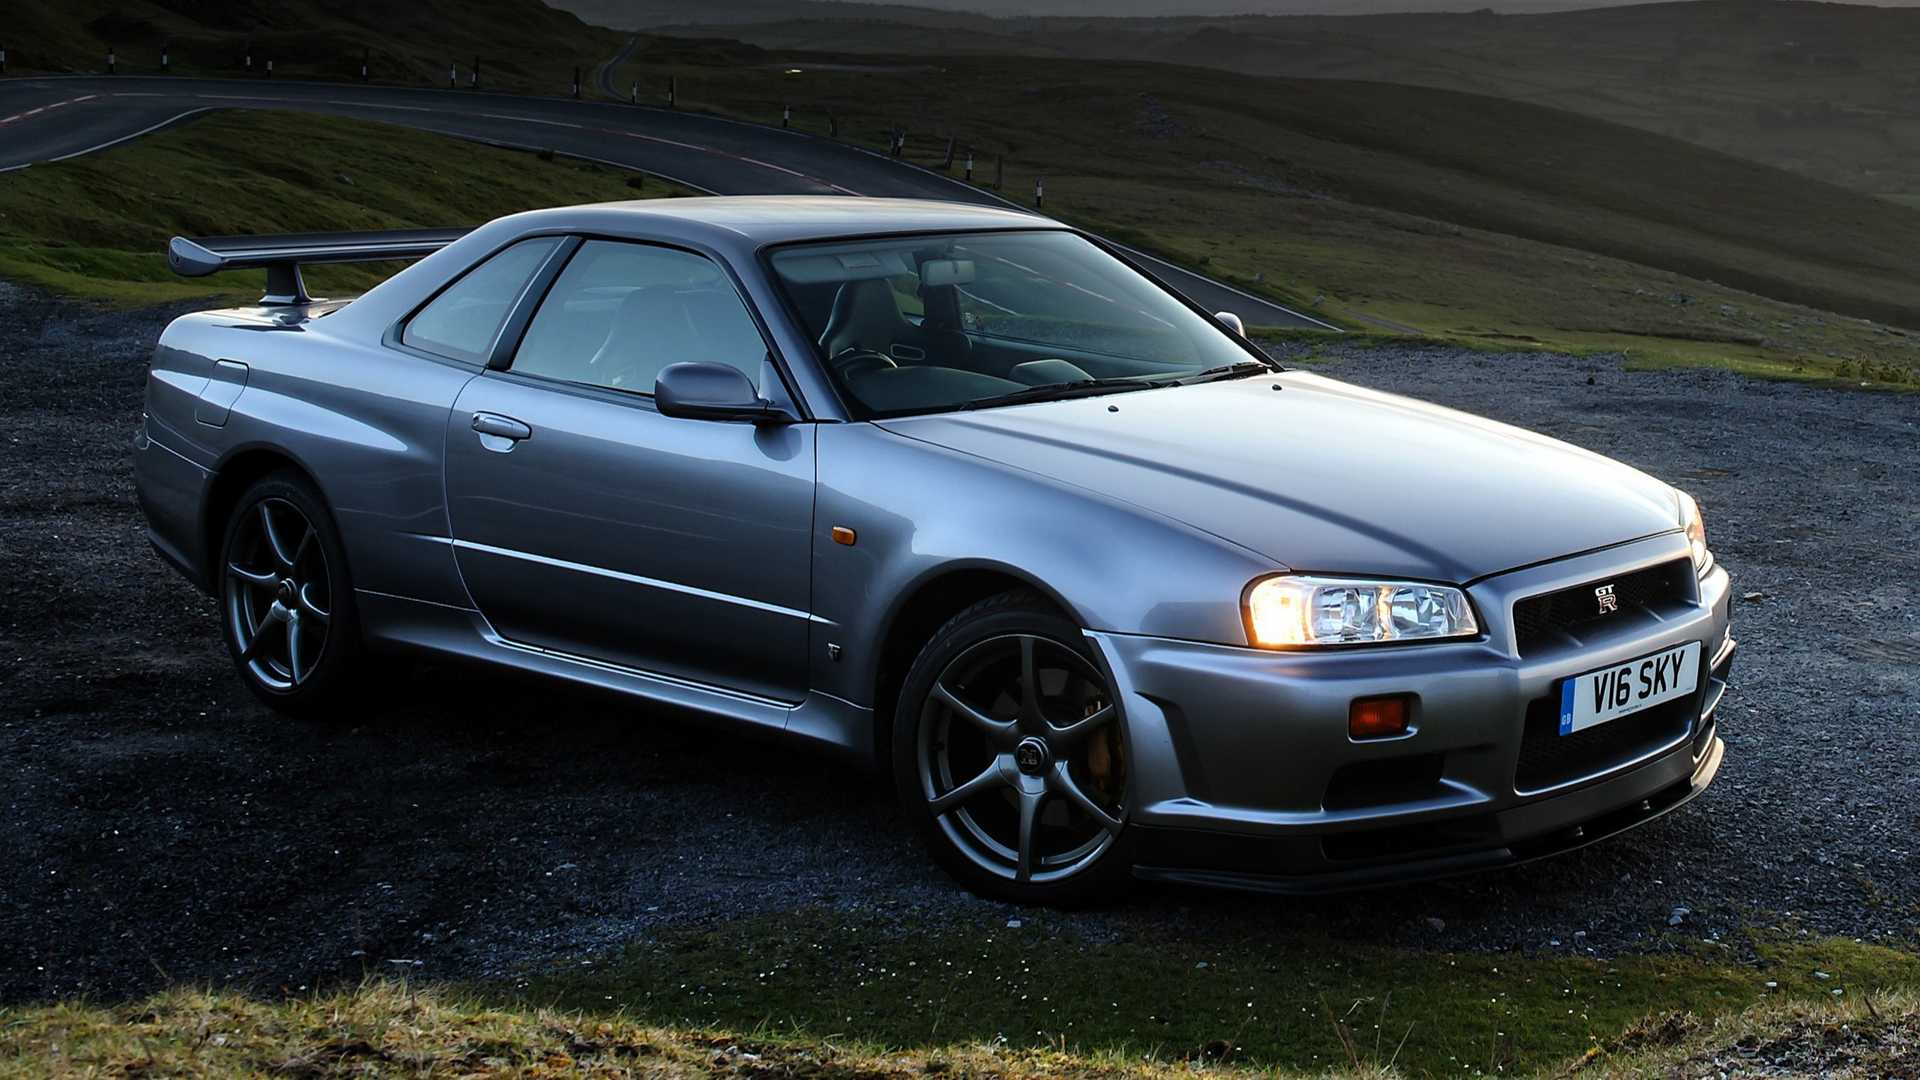 nissan building new parts for classic r33 r34 skyline gt r